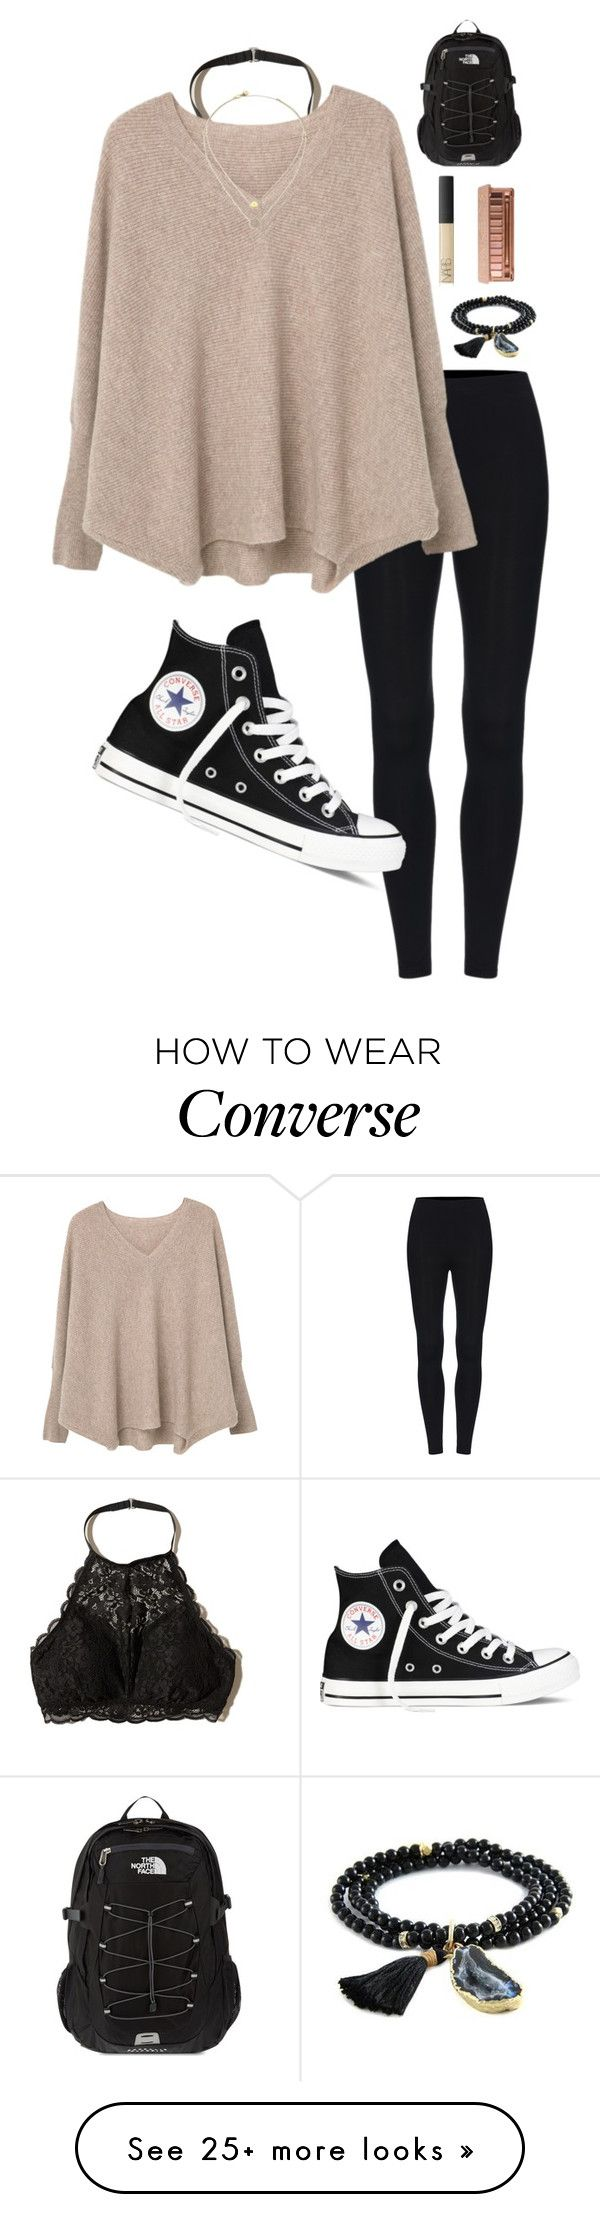 """Honestly I love thursdays idk why lol"" by giannavozzella on Polyvore featuring Hollister Co., MANGO, Michael Kors, Converse, Ettika, NARS Cosmetics, Urban Decay and The North Face"